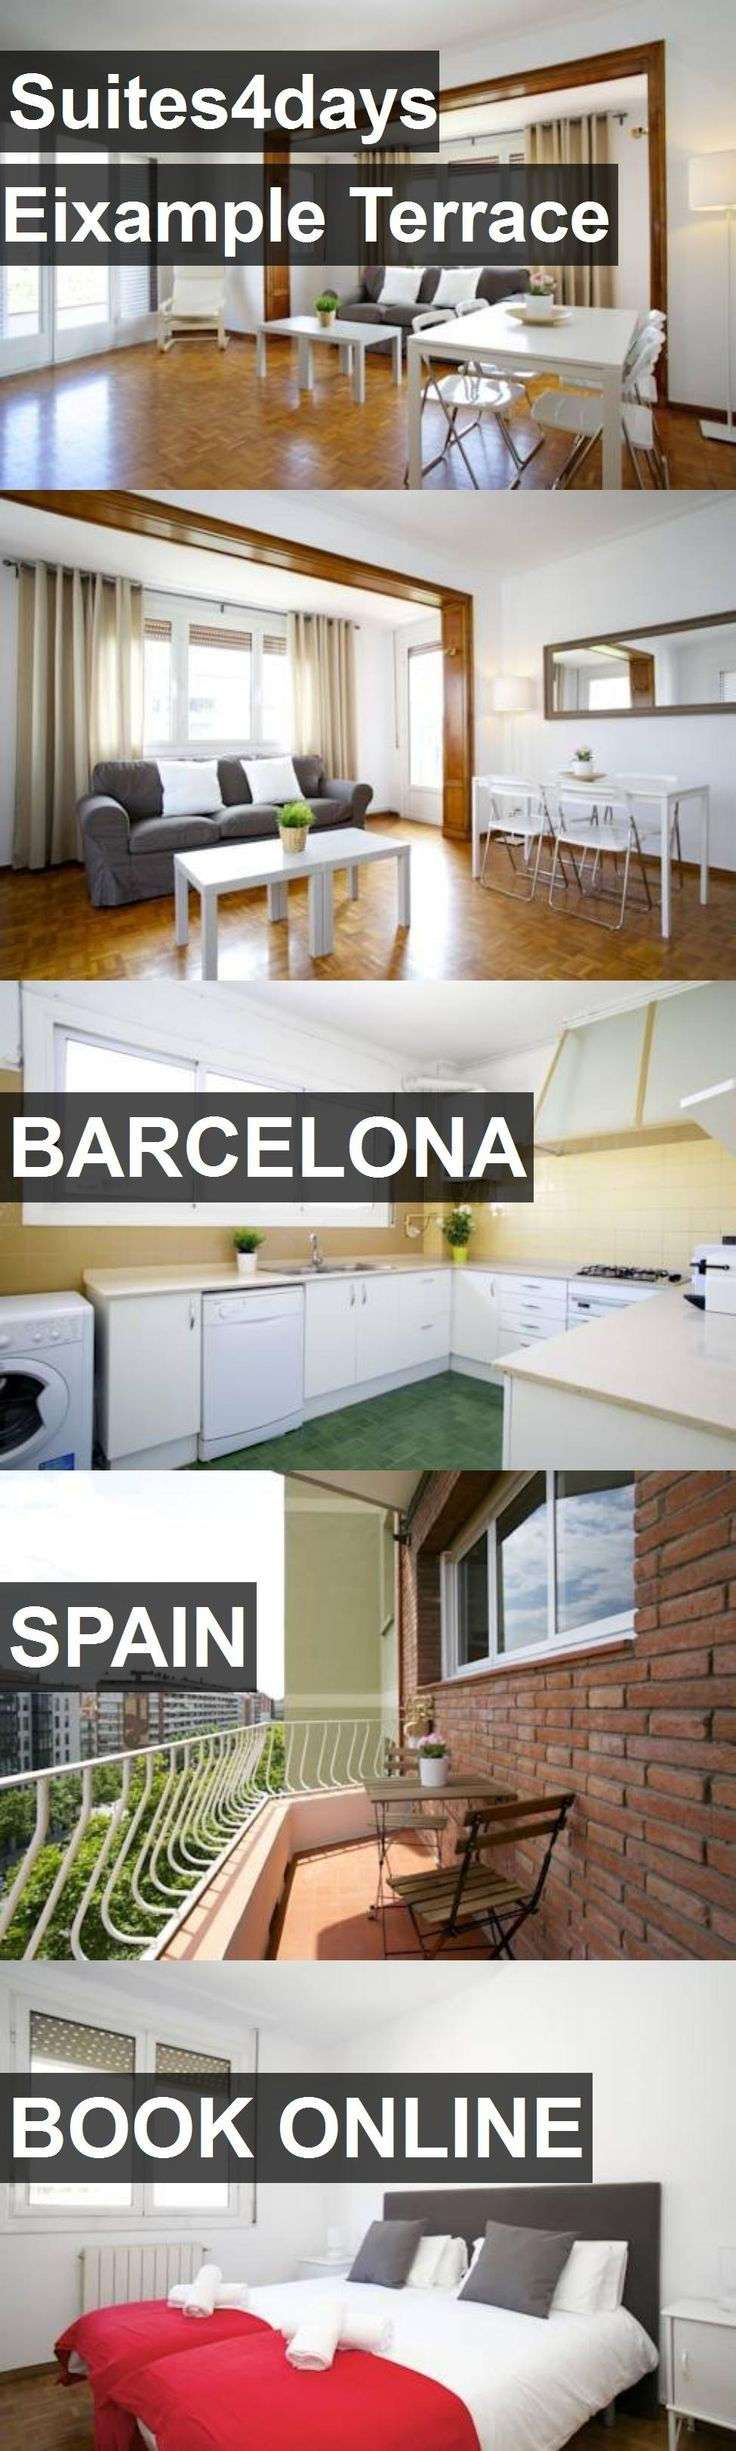 Hotel Suites4days Eixample Terrace in Barcelona, Spain. For more information, photos, reviews and best prices please follow the link. #Spain #Barcelona #travel #vacation #hotel